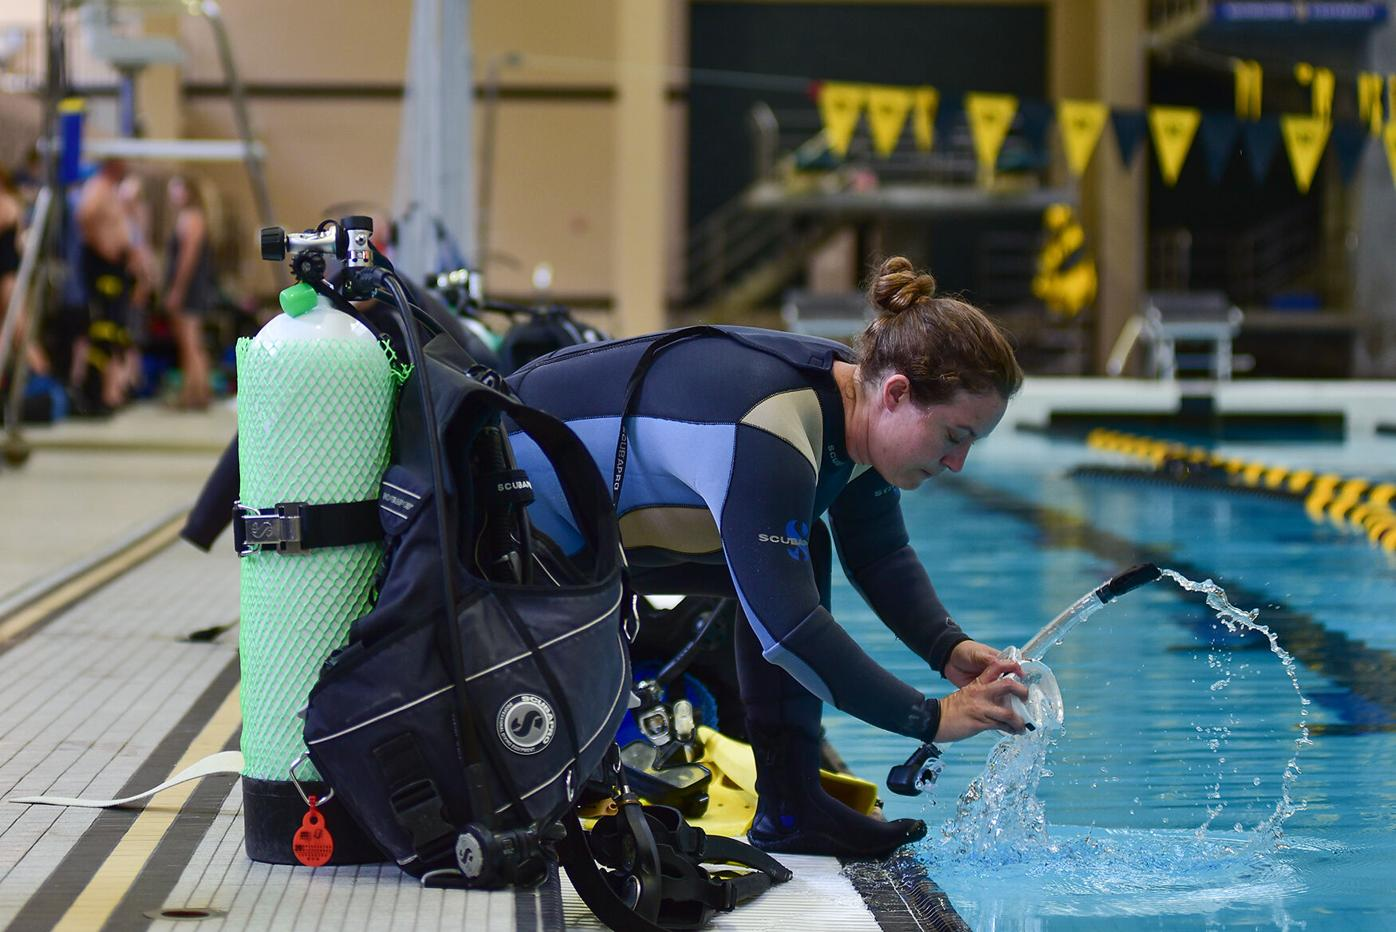 Fulton resident Amy Sue Guinn cleans off her dive mask before entering the pool for a scuba diving class